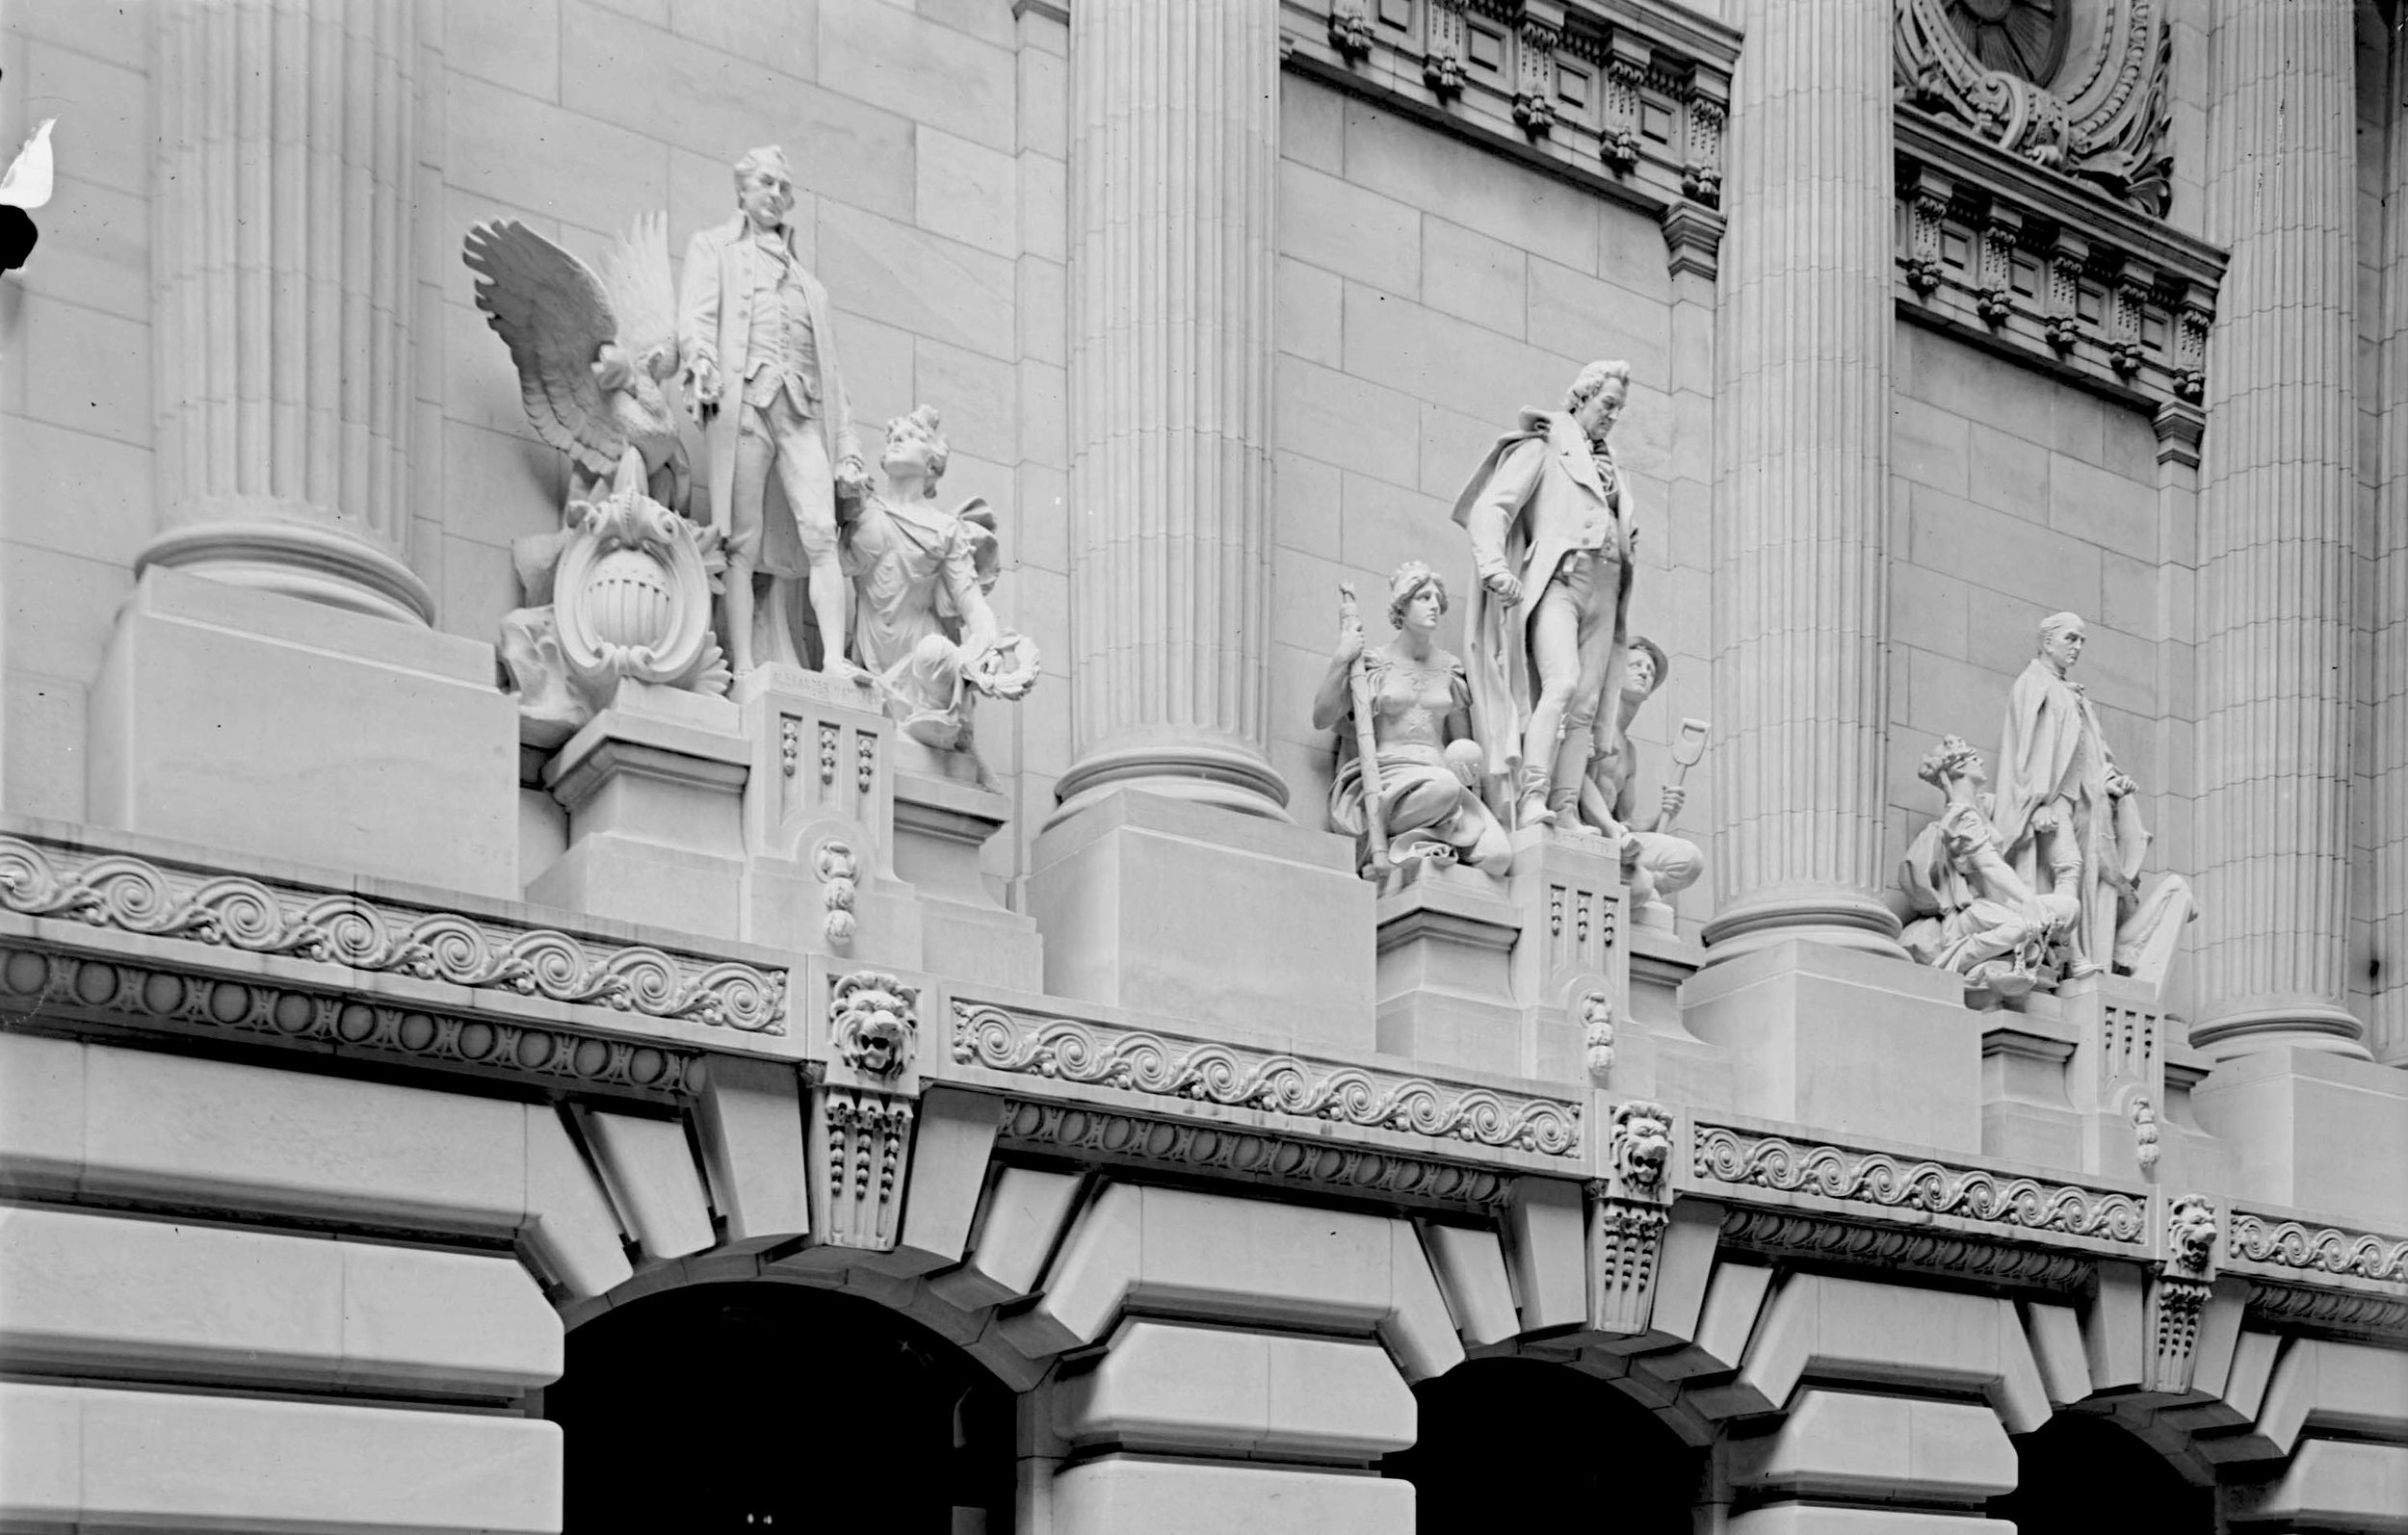 Three sculptures (John Jay, Alexander Hamilton and DeWitt Clinton) once adorned the front of the building